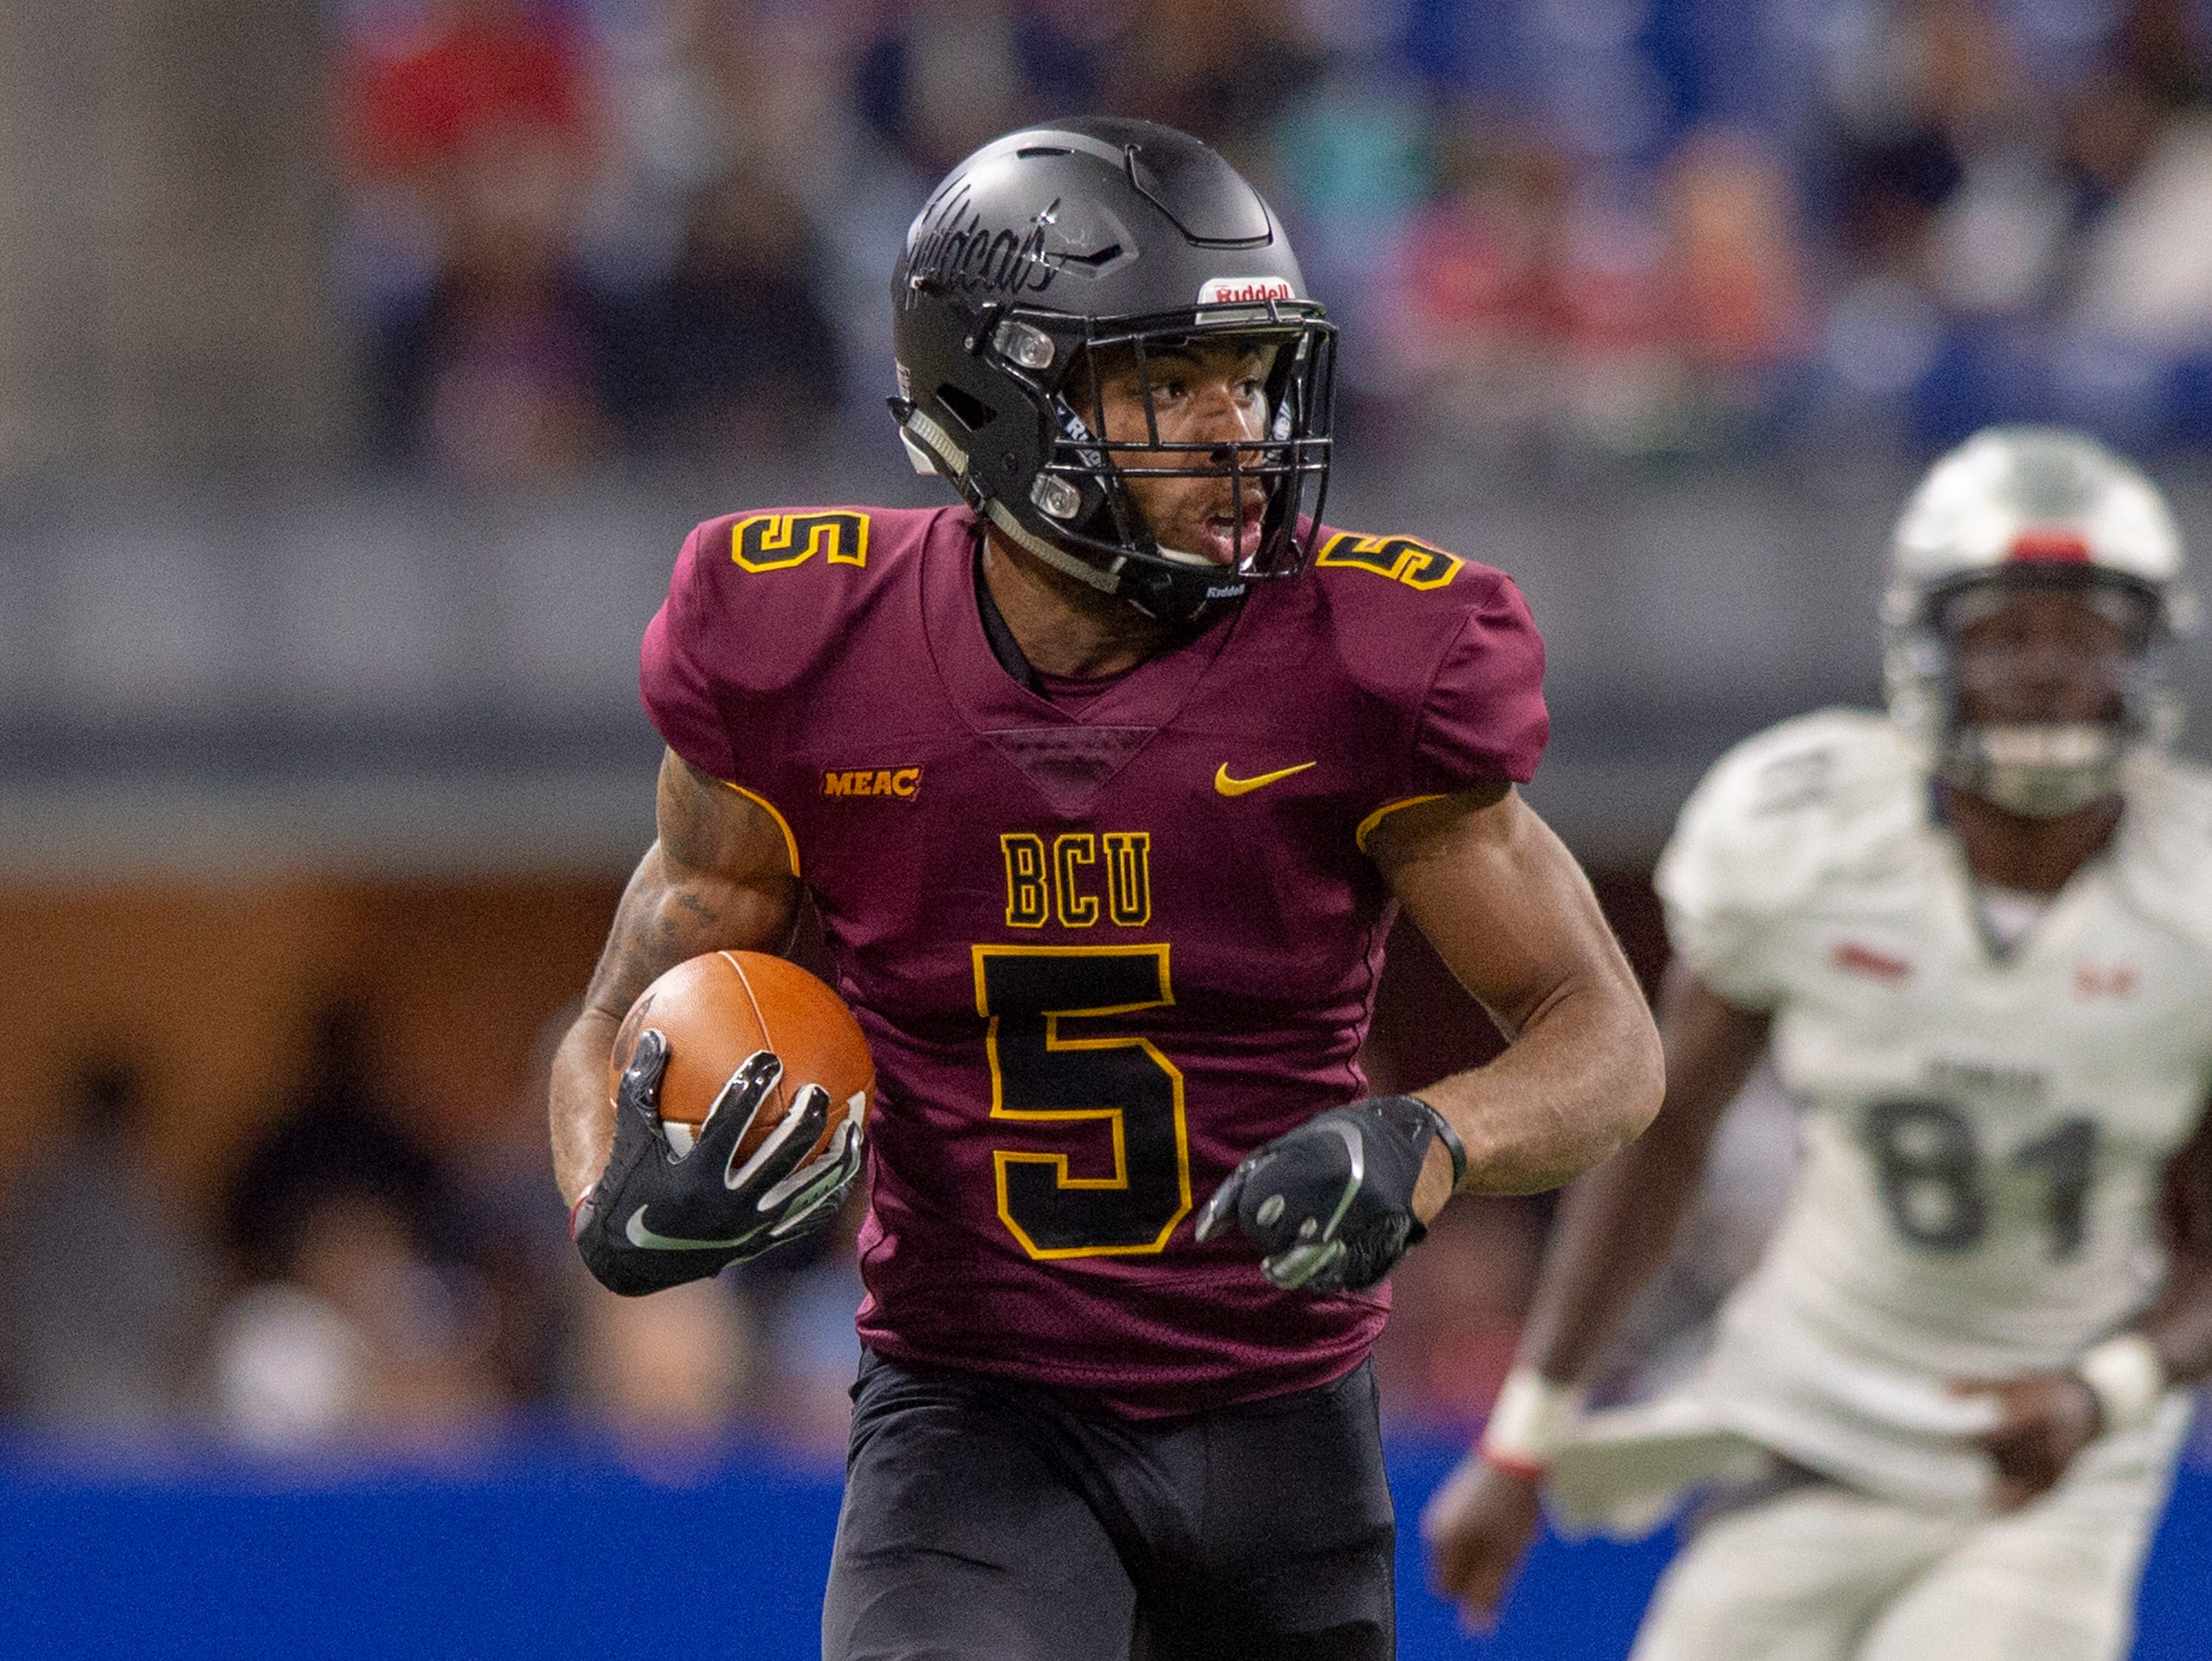 Bethune Cookman Wildcats safety Kennedy Ndukwe (5) returns a fumble recovery to the 10 yard line during the second half of action. Howard Bison took on Bethune Cookman Wildcats in the Circle City Classic game, Saturday, Sept. 22, 2018, at Lucas Oil Stadium. Howard won 14-35.